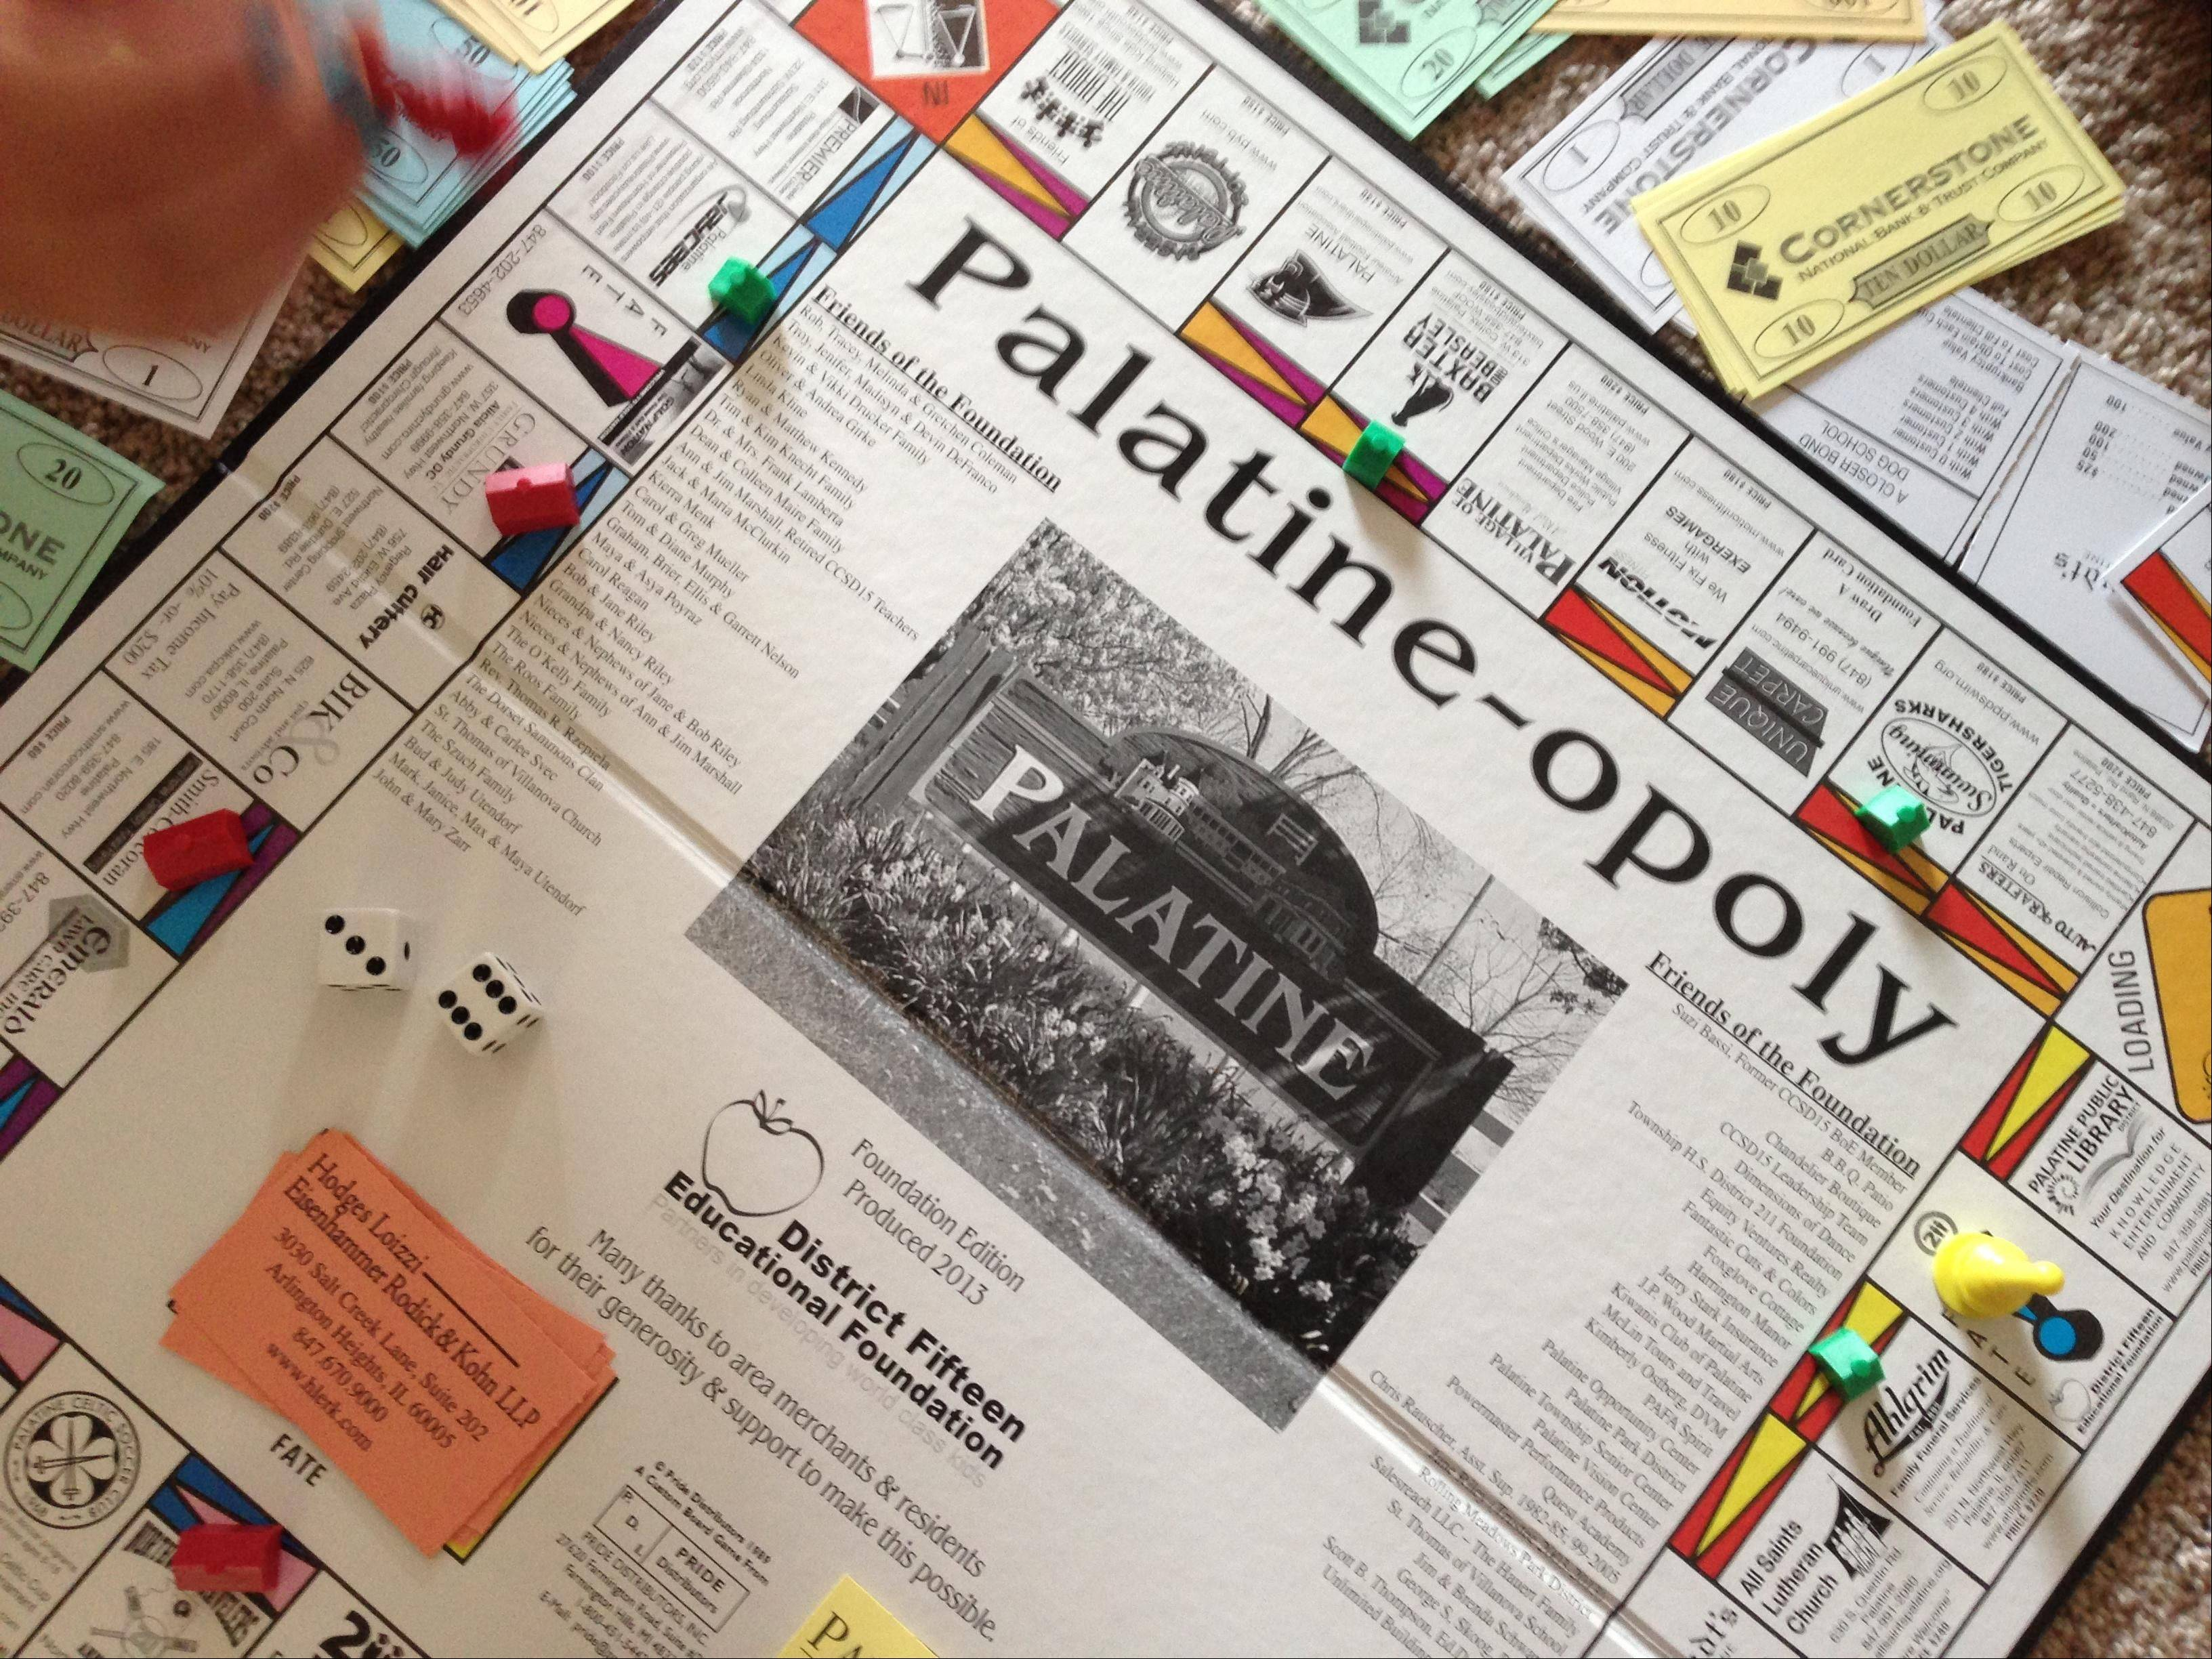 The District 15 Educational Foundation created a Palatine-opoly game as a fundraiser. The game features Palatine business, landmarks and organizations.